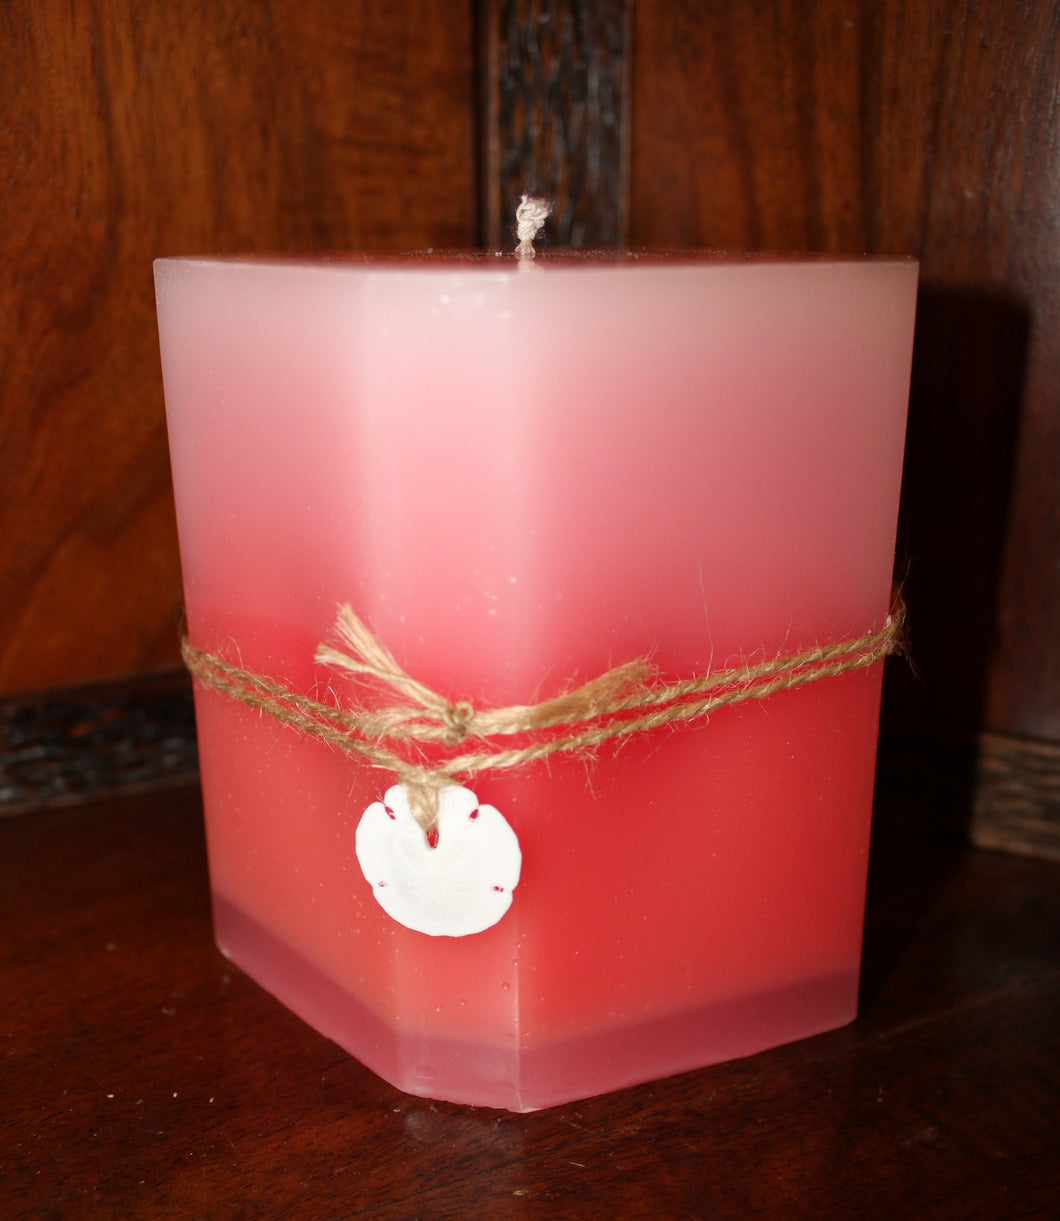 Pale Pink to & Red Ombre Parafin Candle (Rose, Eucalyptus, and Lemon Scent)